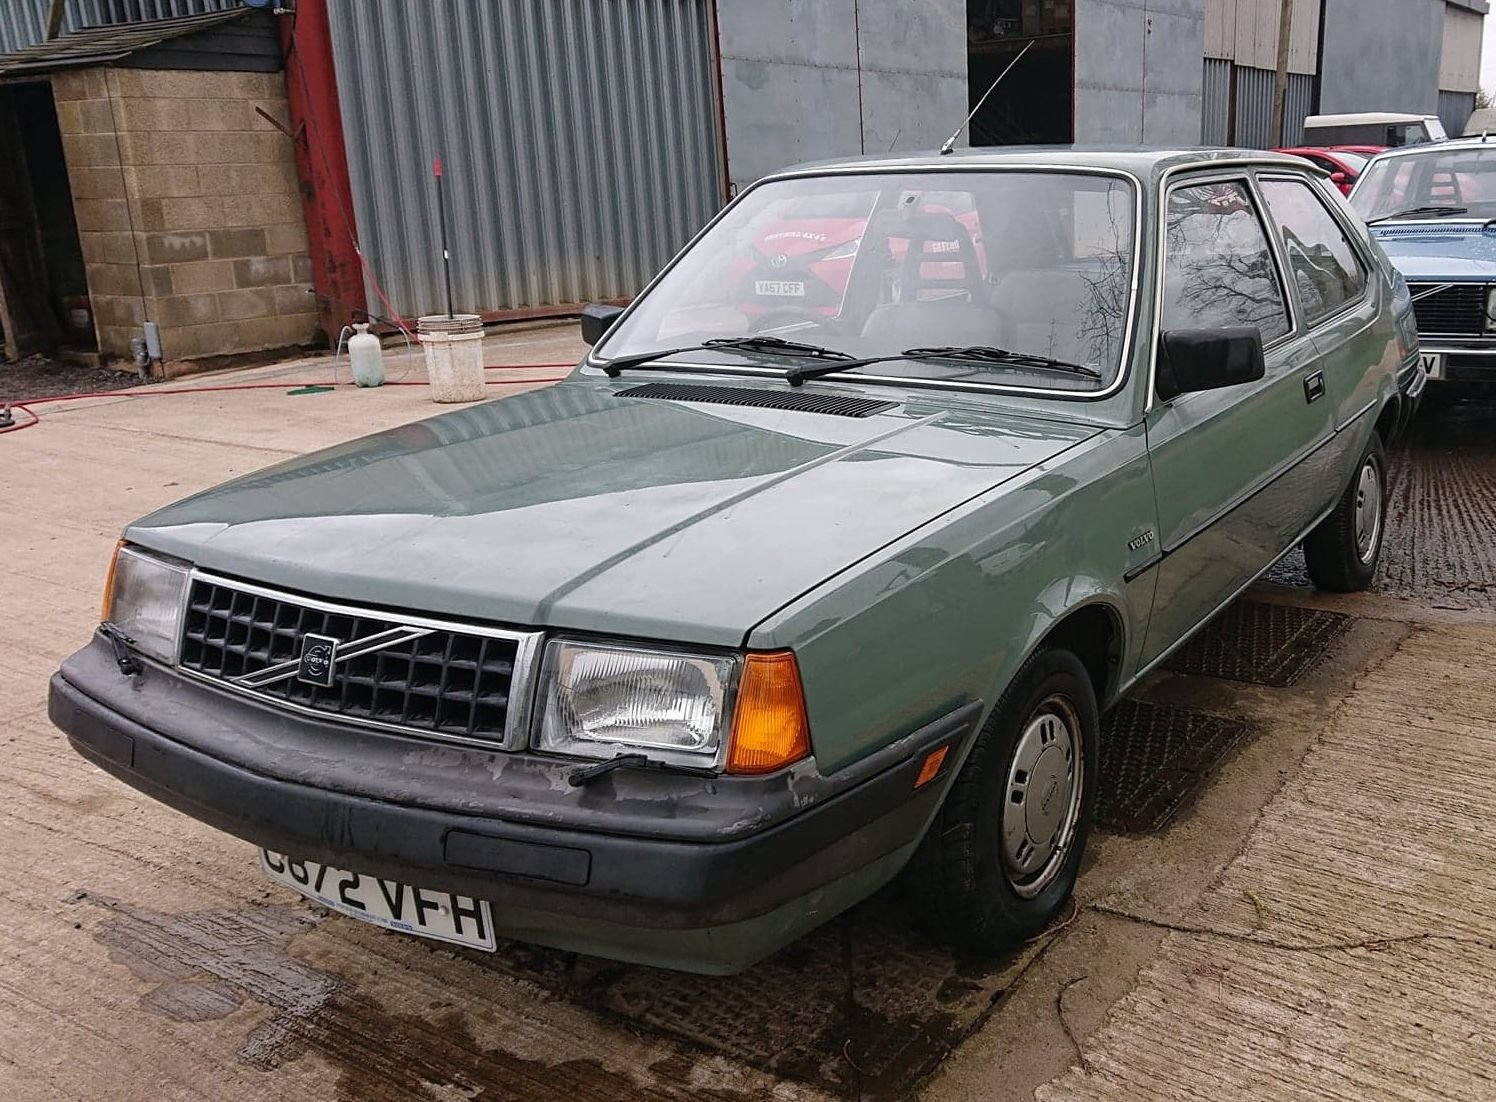 Unexceptional Classifieds: Volvo 340 DL